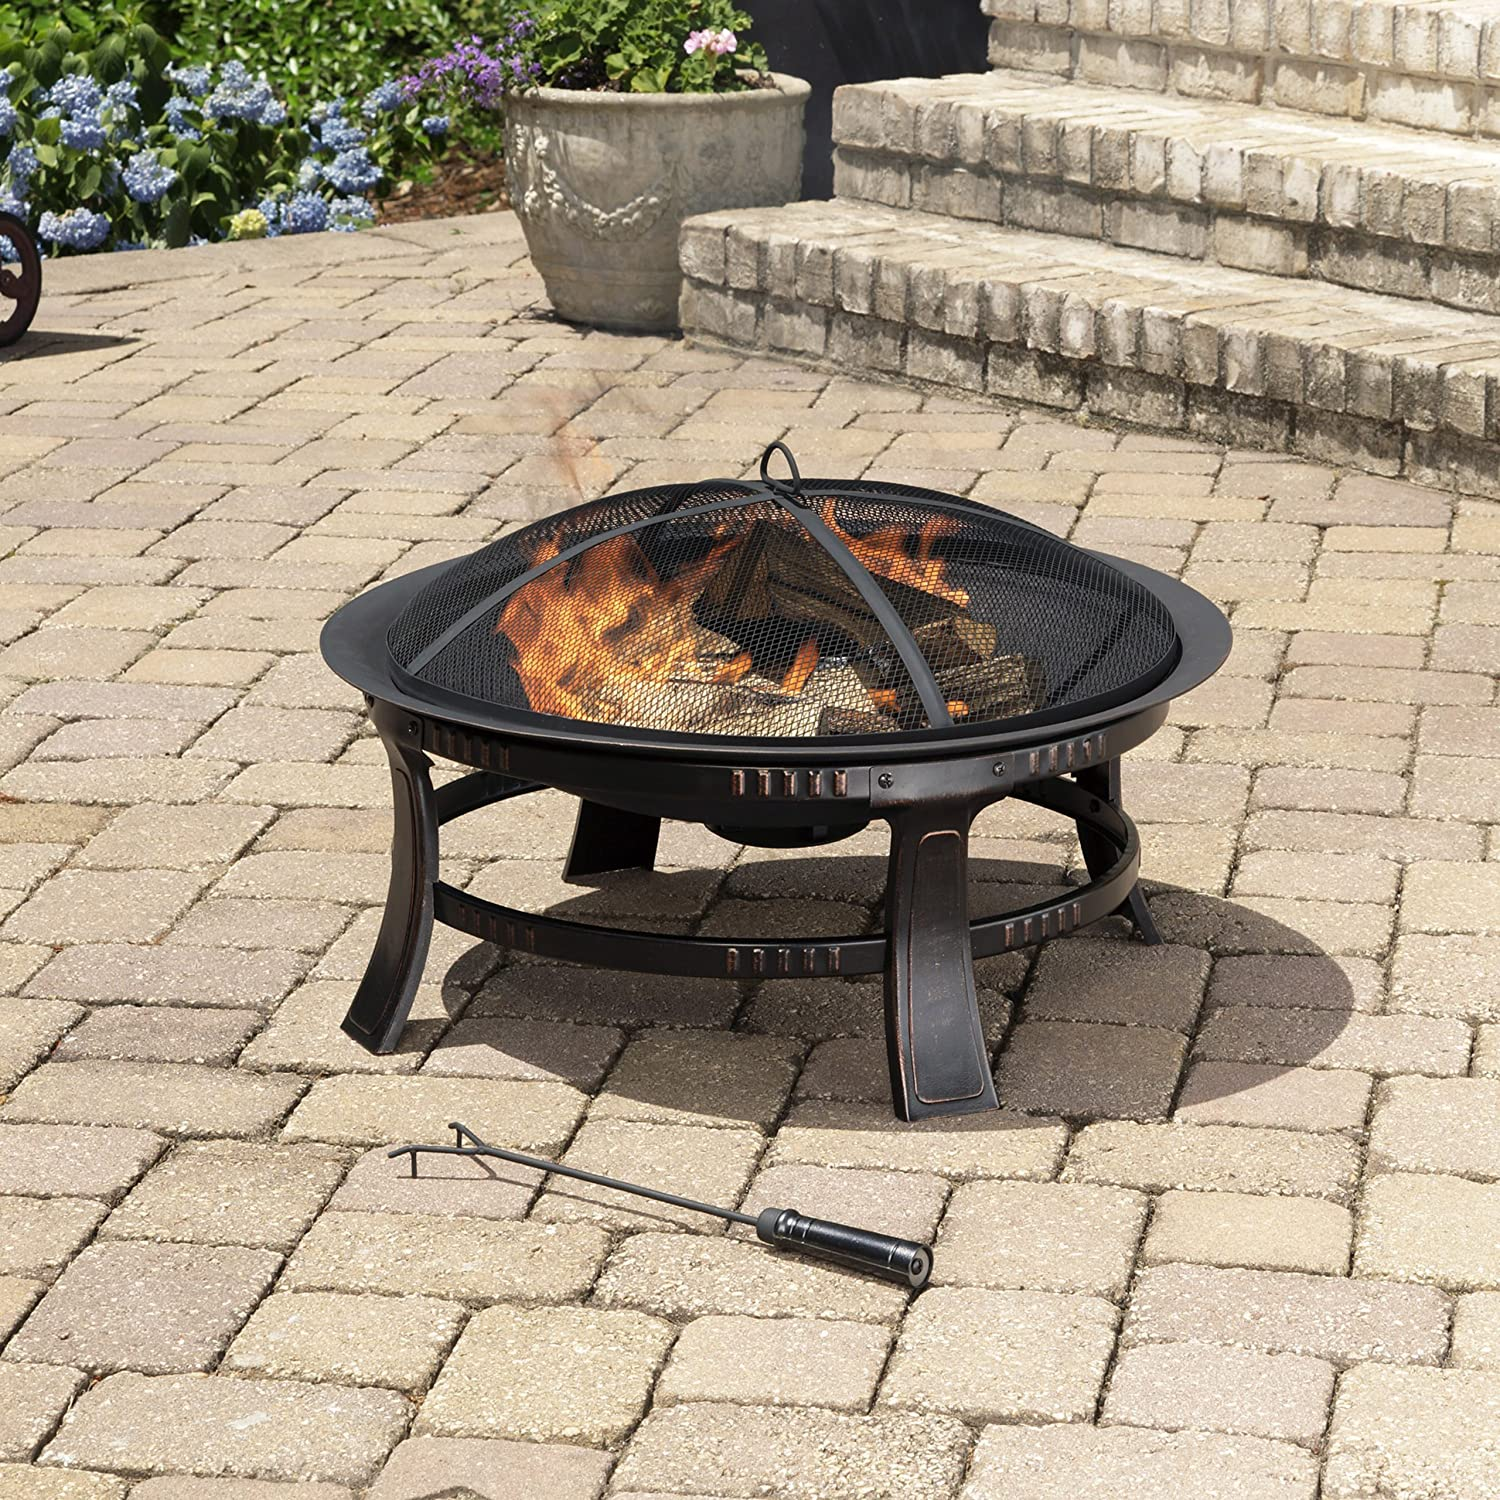 Amazoncom Pleasant Hearth Brant Round Fire Pit Inch Firepit - 30 inch fire pit table